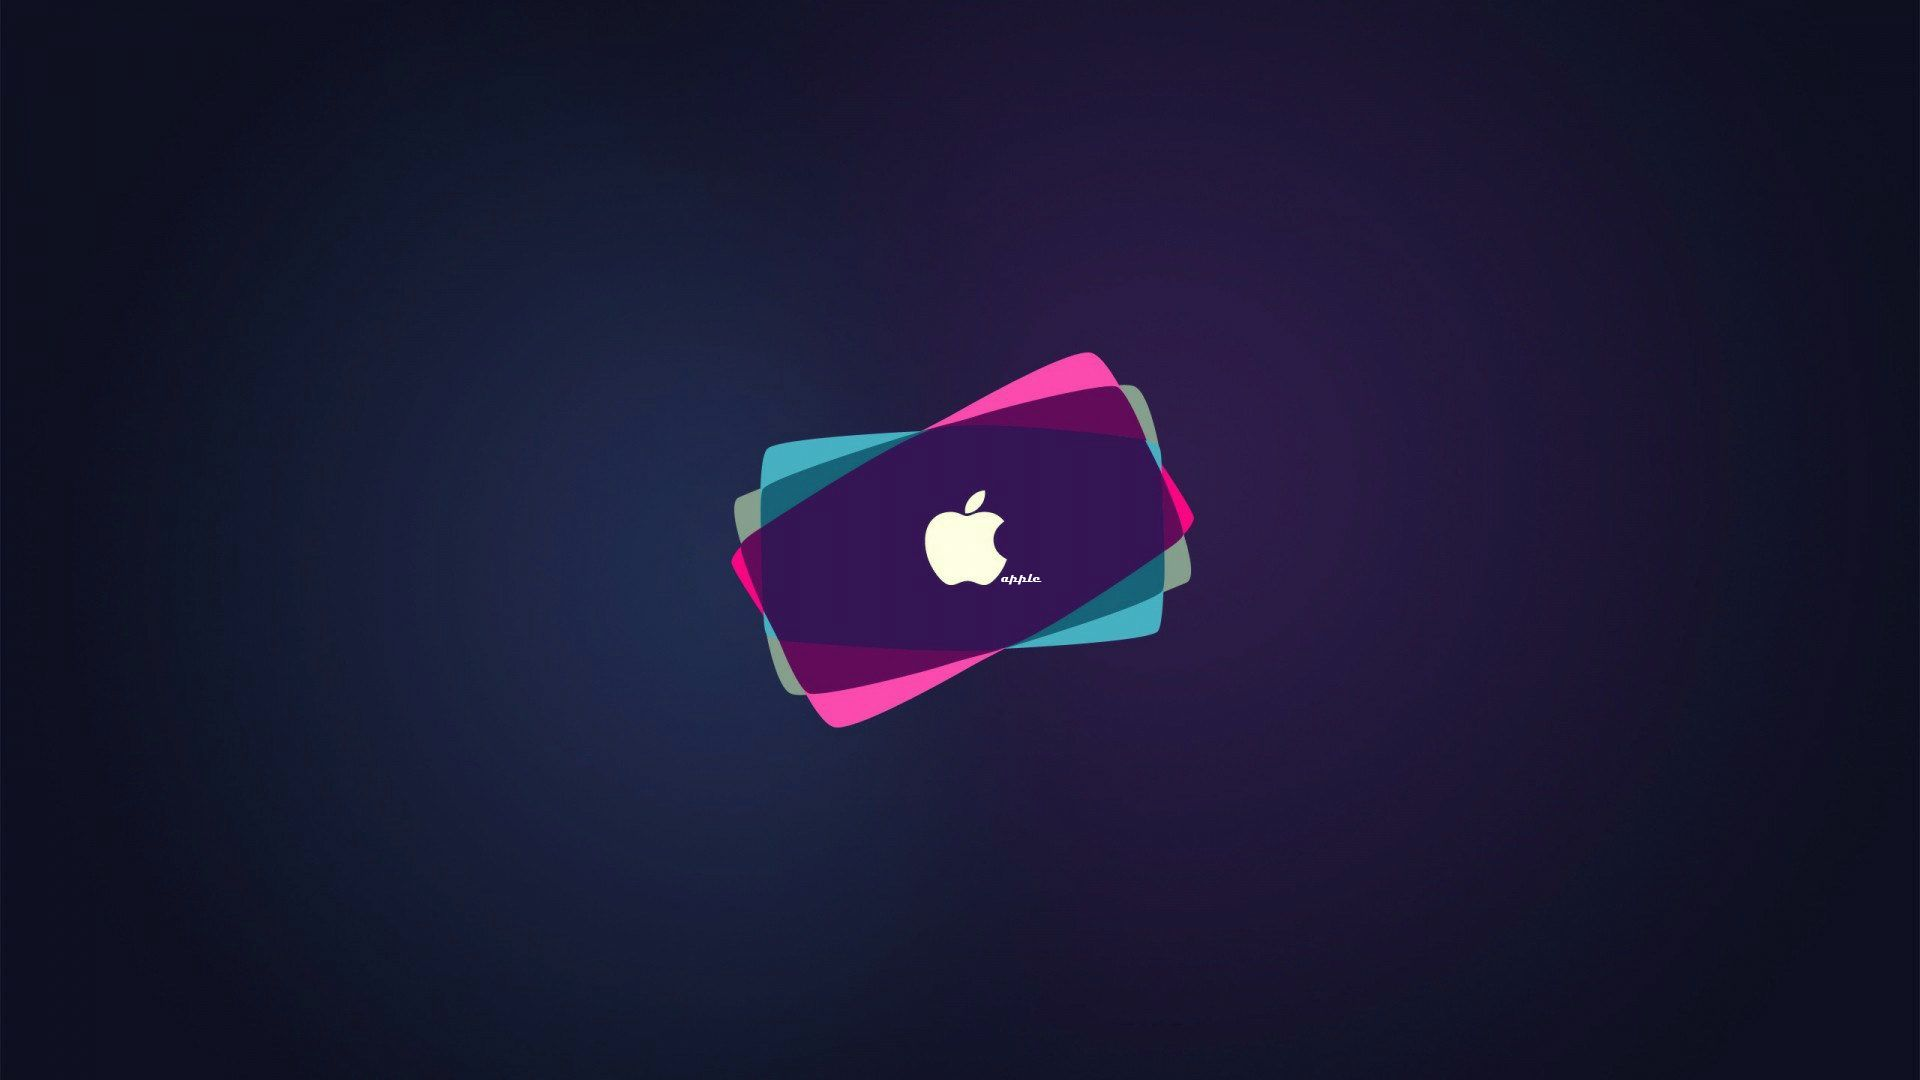 Mac Wallpapers HD